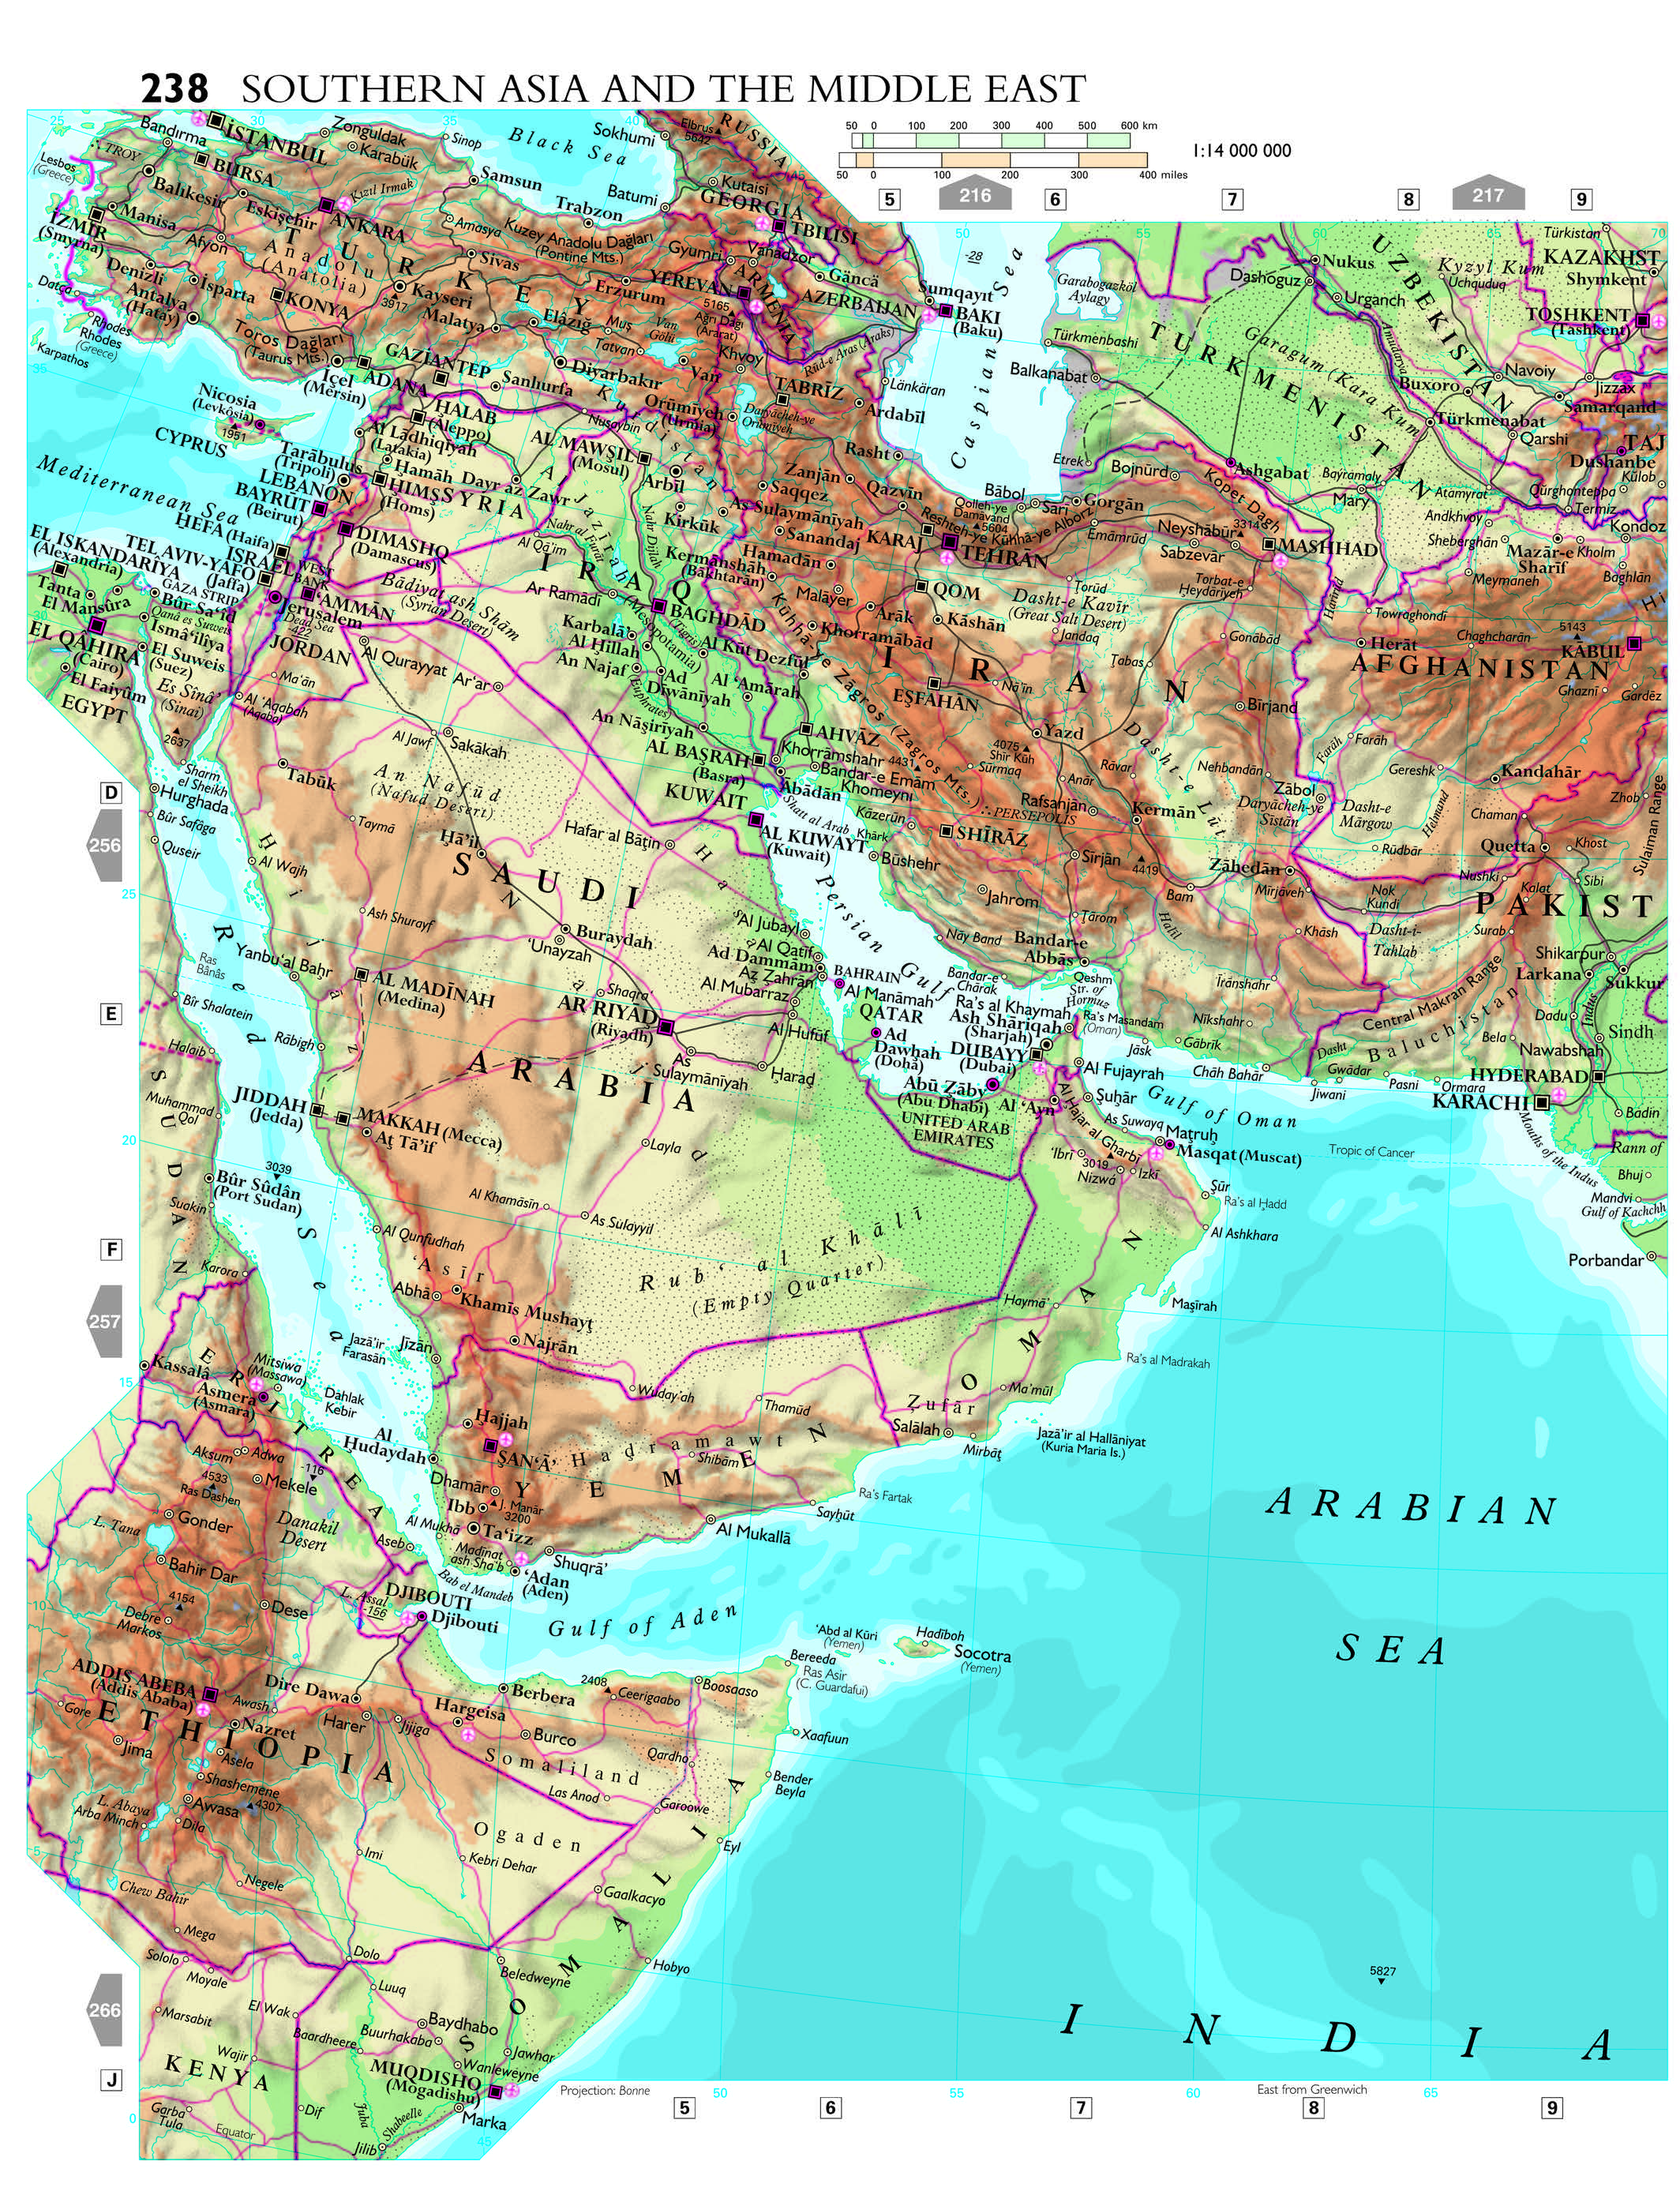 World Atlas Map Of Asia.Place Of The Year A Look Back At Past Winners Oupblog